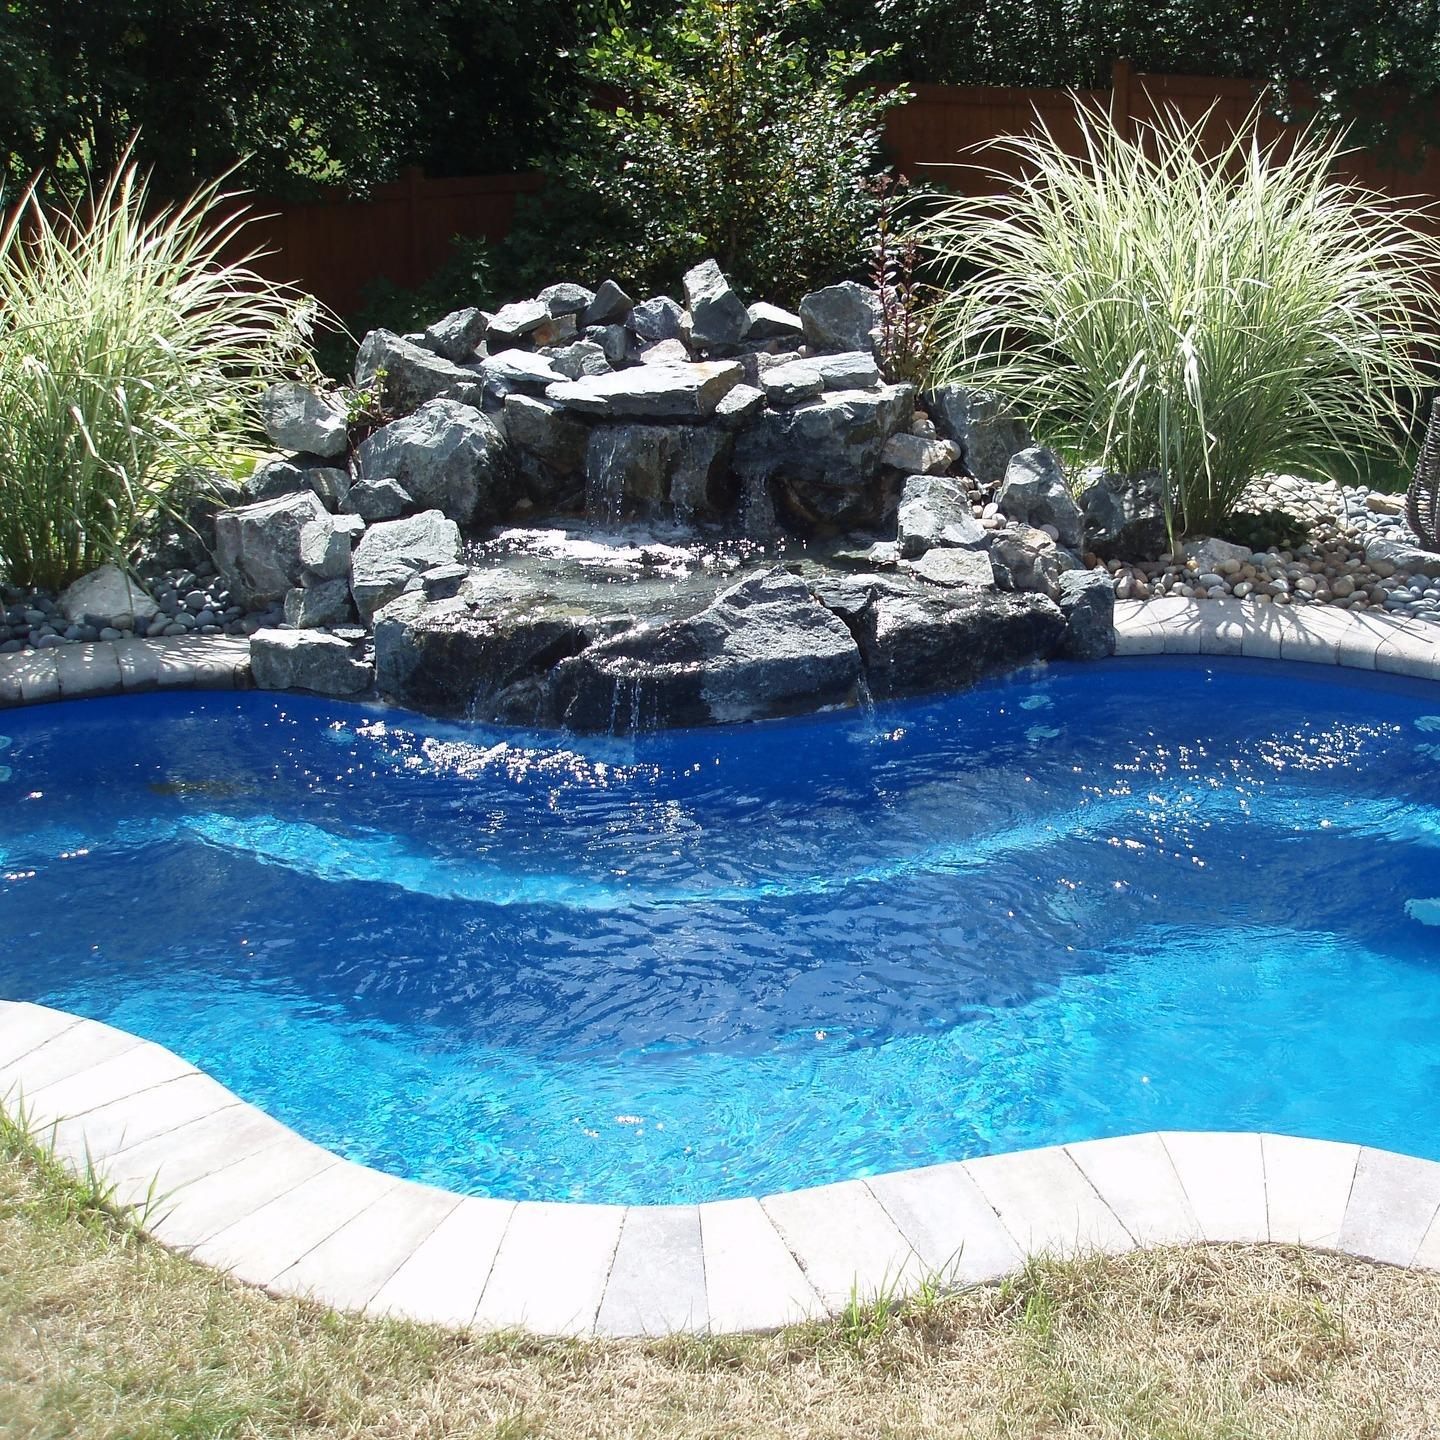 Patriot Pools Of Lake County Management Inc. - Antioch, IL - General Contractors